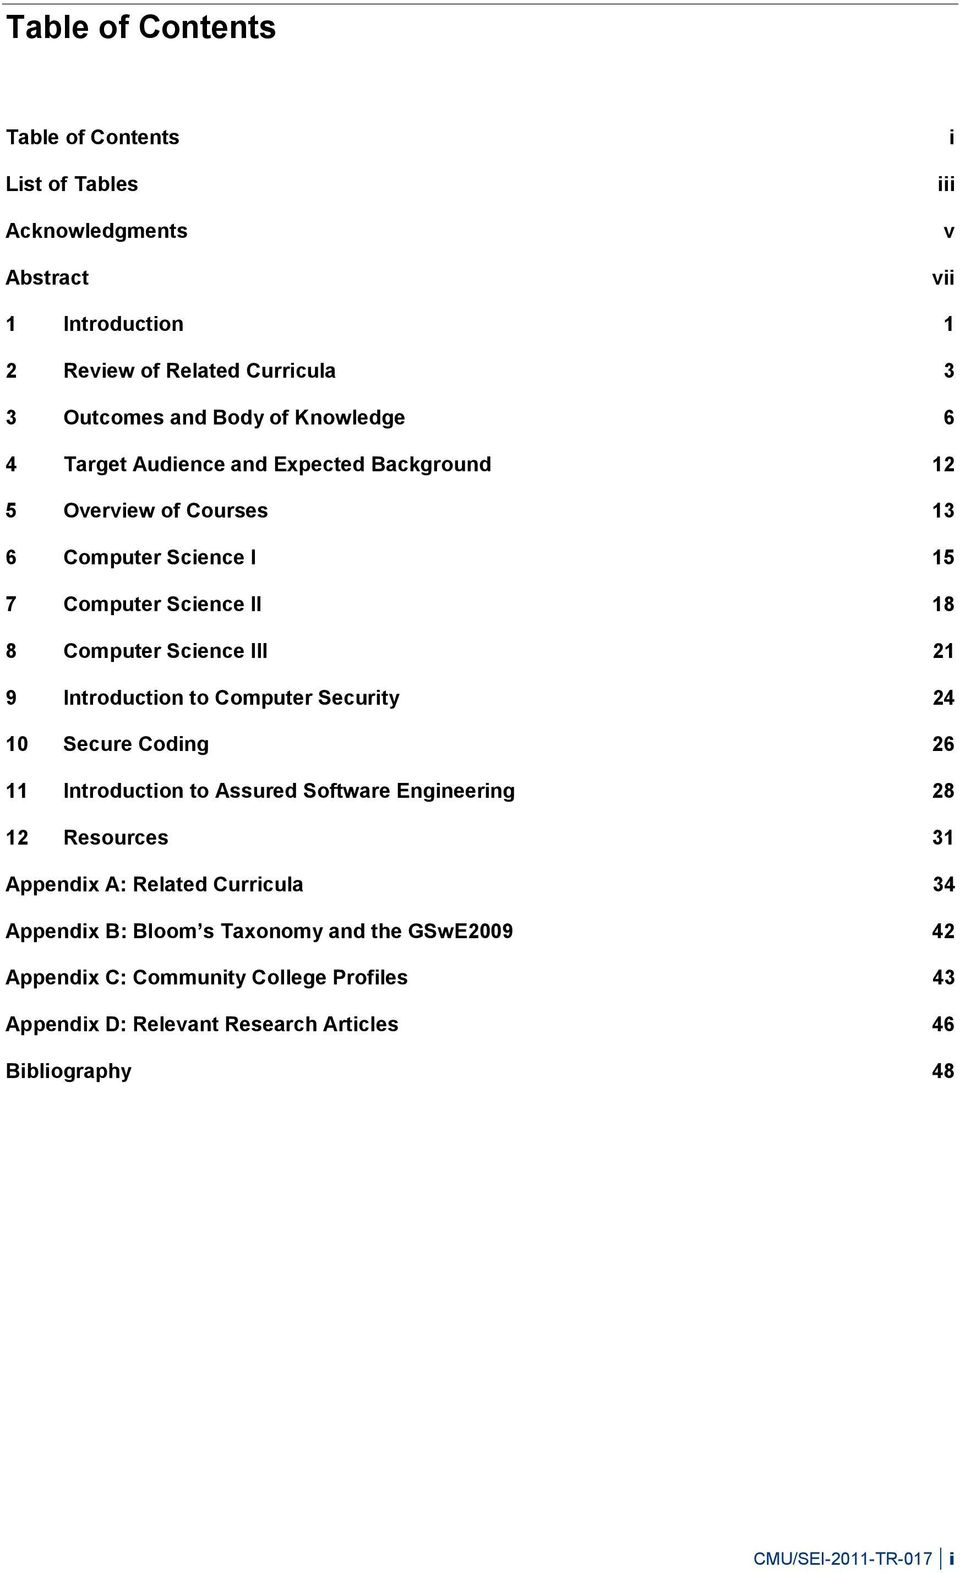 Introduction to Computer Security 24 10 Secure Coding 26 11 Introduction to Assured Software Engineering 28 12 Resources 31 Appendix A: Related Curricula 34